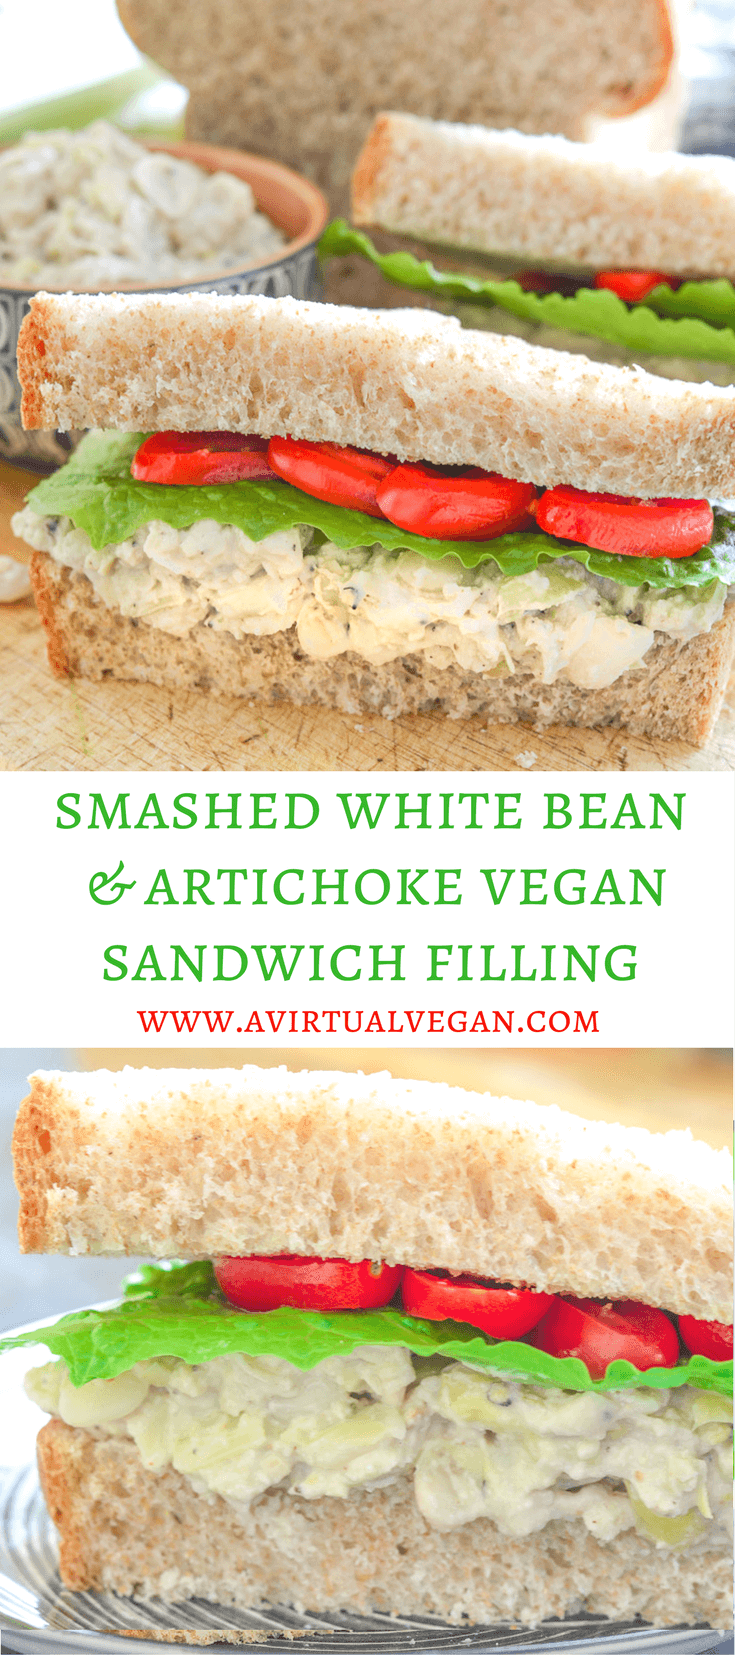 Creamy Smashed White Bean & Artichoke Vegan Sandwich Filling with hints of rosemary & lemon. Fresh, delicious & so easy to make!